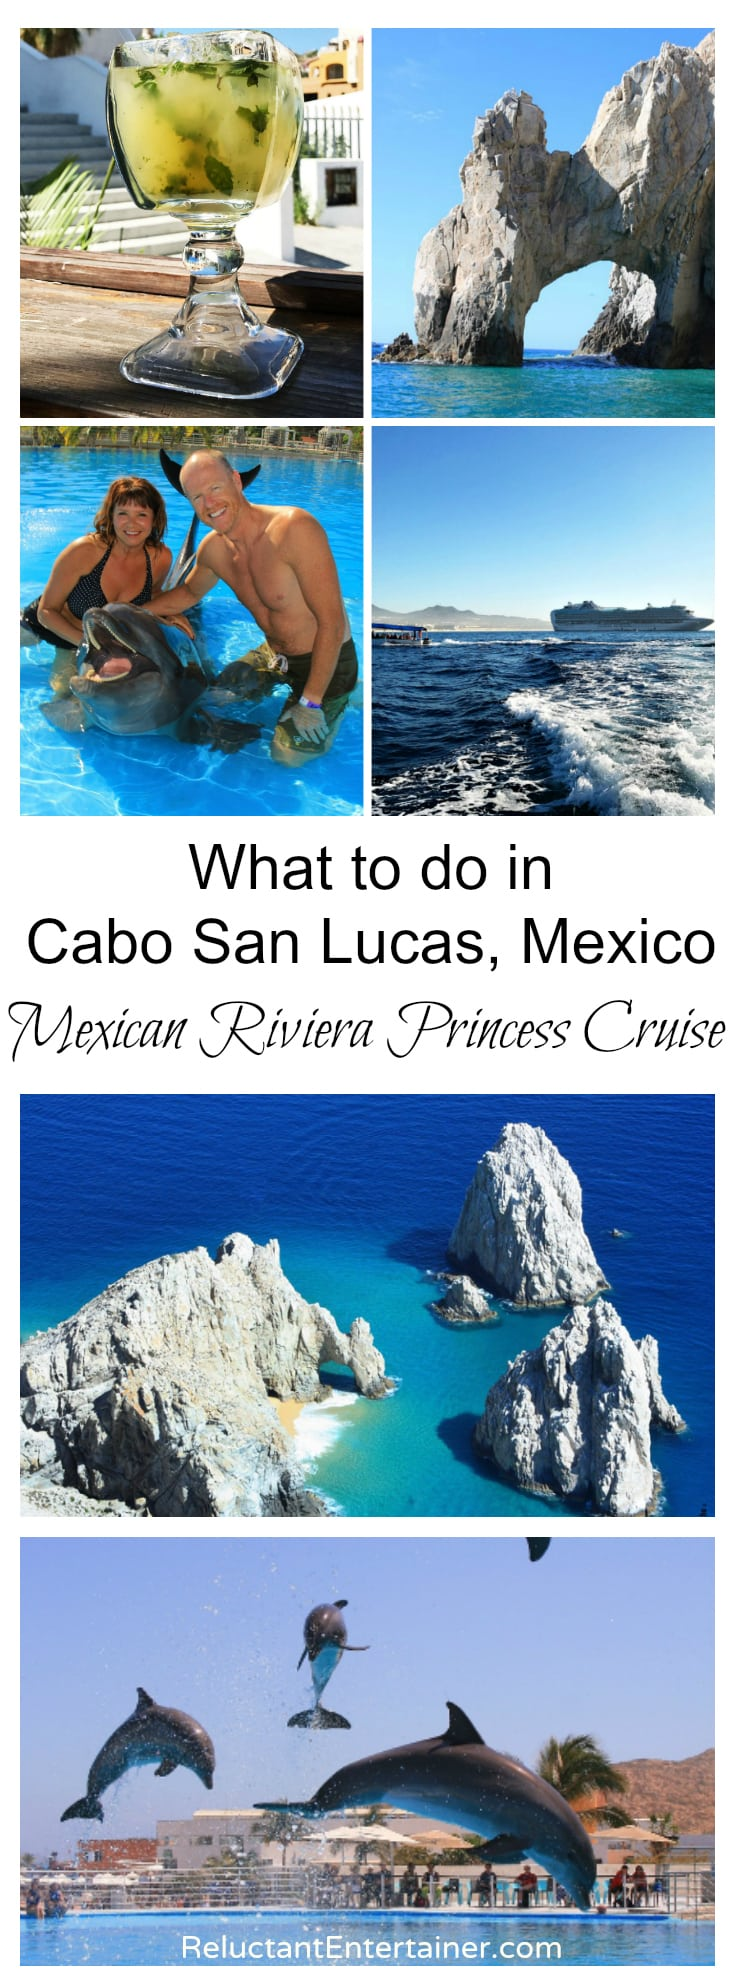 What to do in Cabo San Lucas, Mexico on Mexican Riviera Princess Cruise